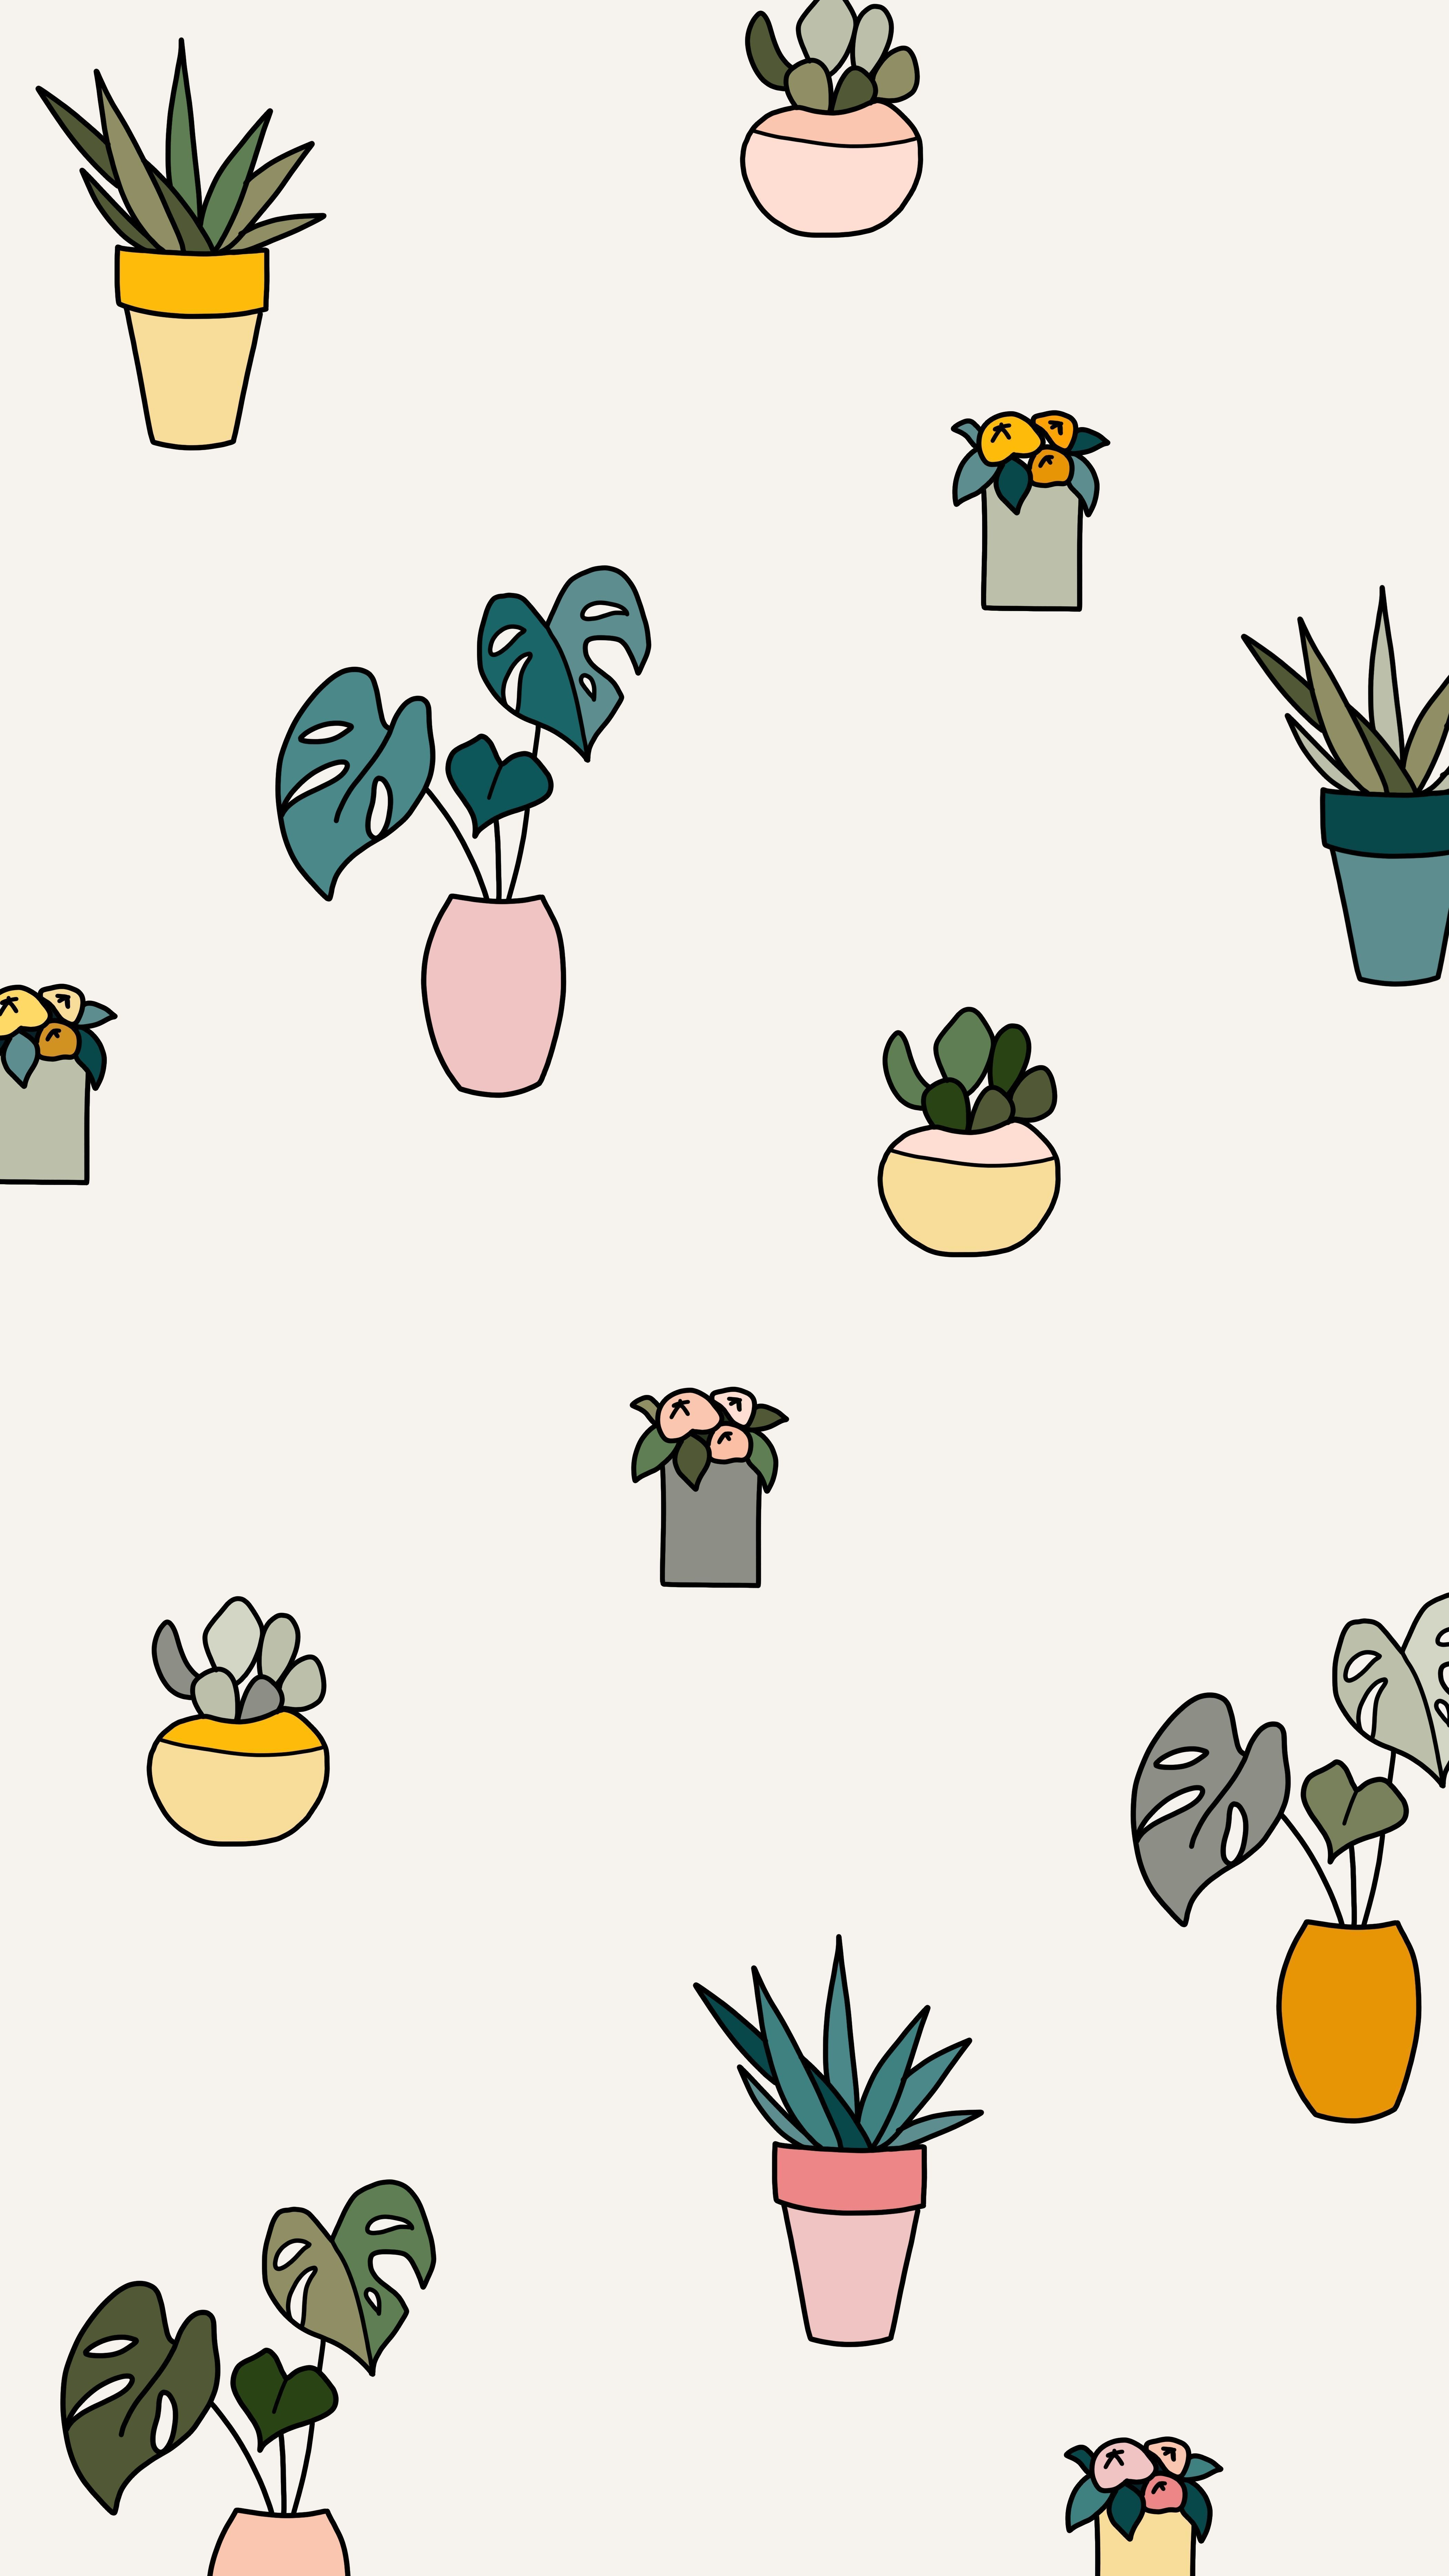 My May Flowers A Daily Drawing Challenge Potted Plants Monstera Leaf Succu Ch Succulents Wallpaper Iphone Background Inspiration Ipad Pro Wallpaper